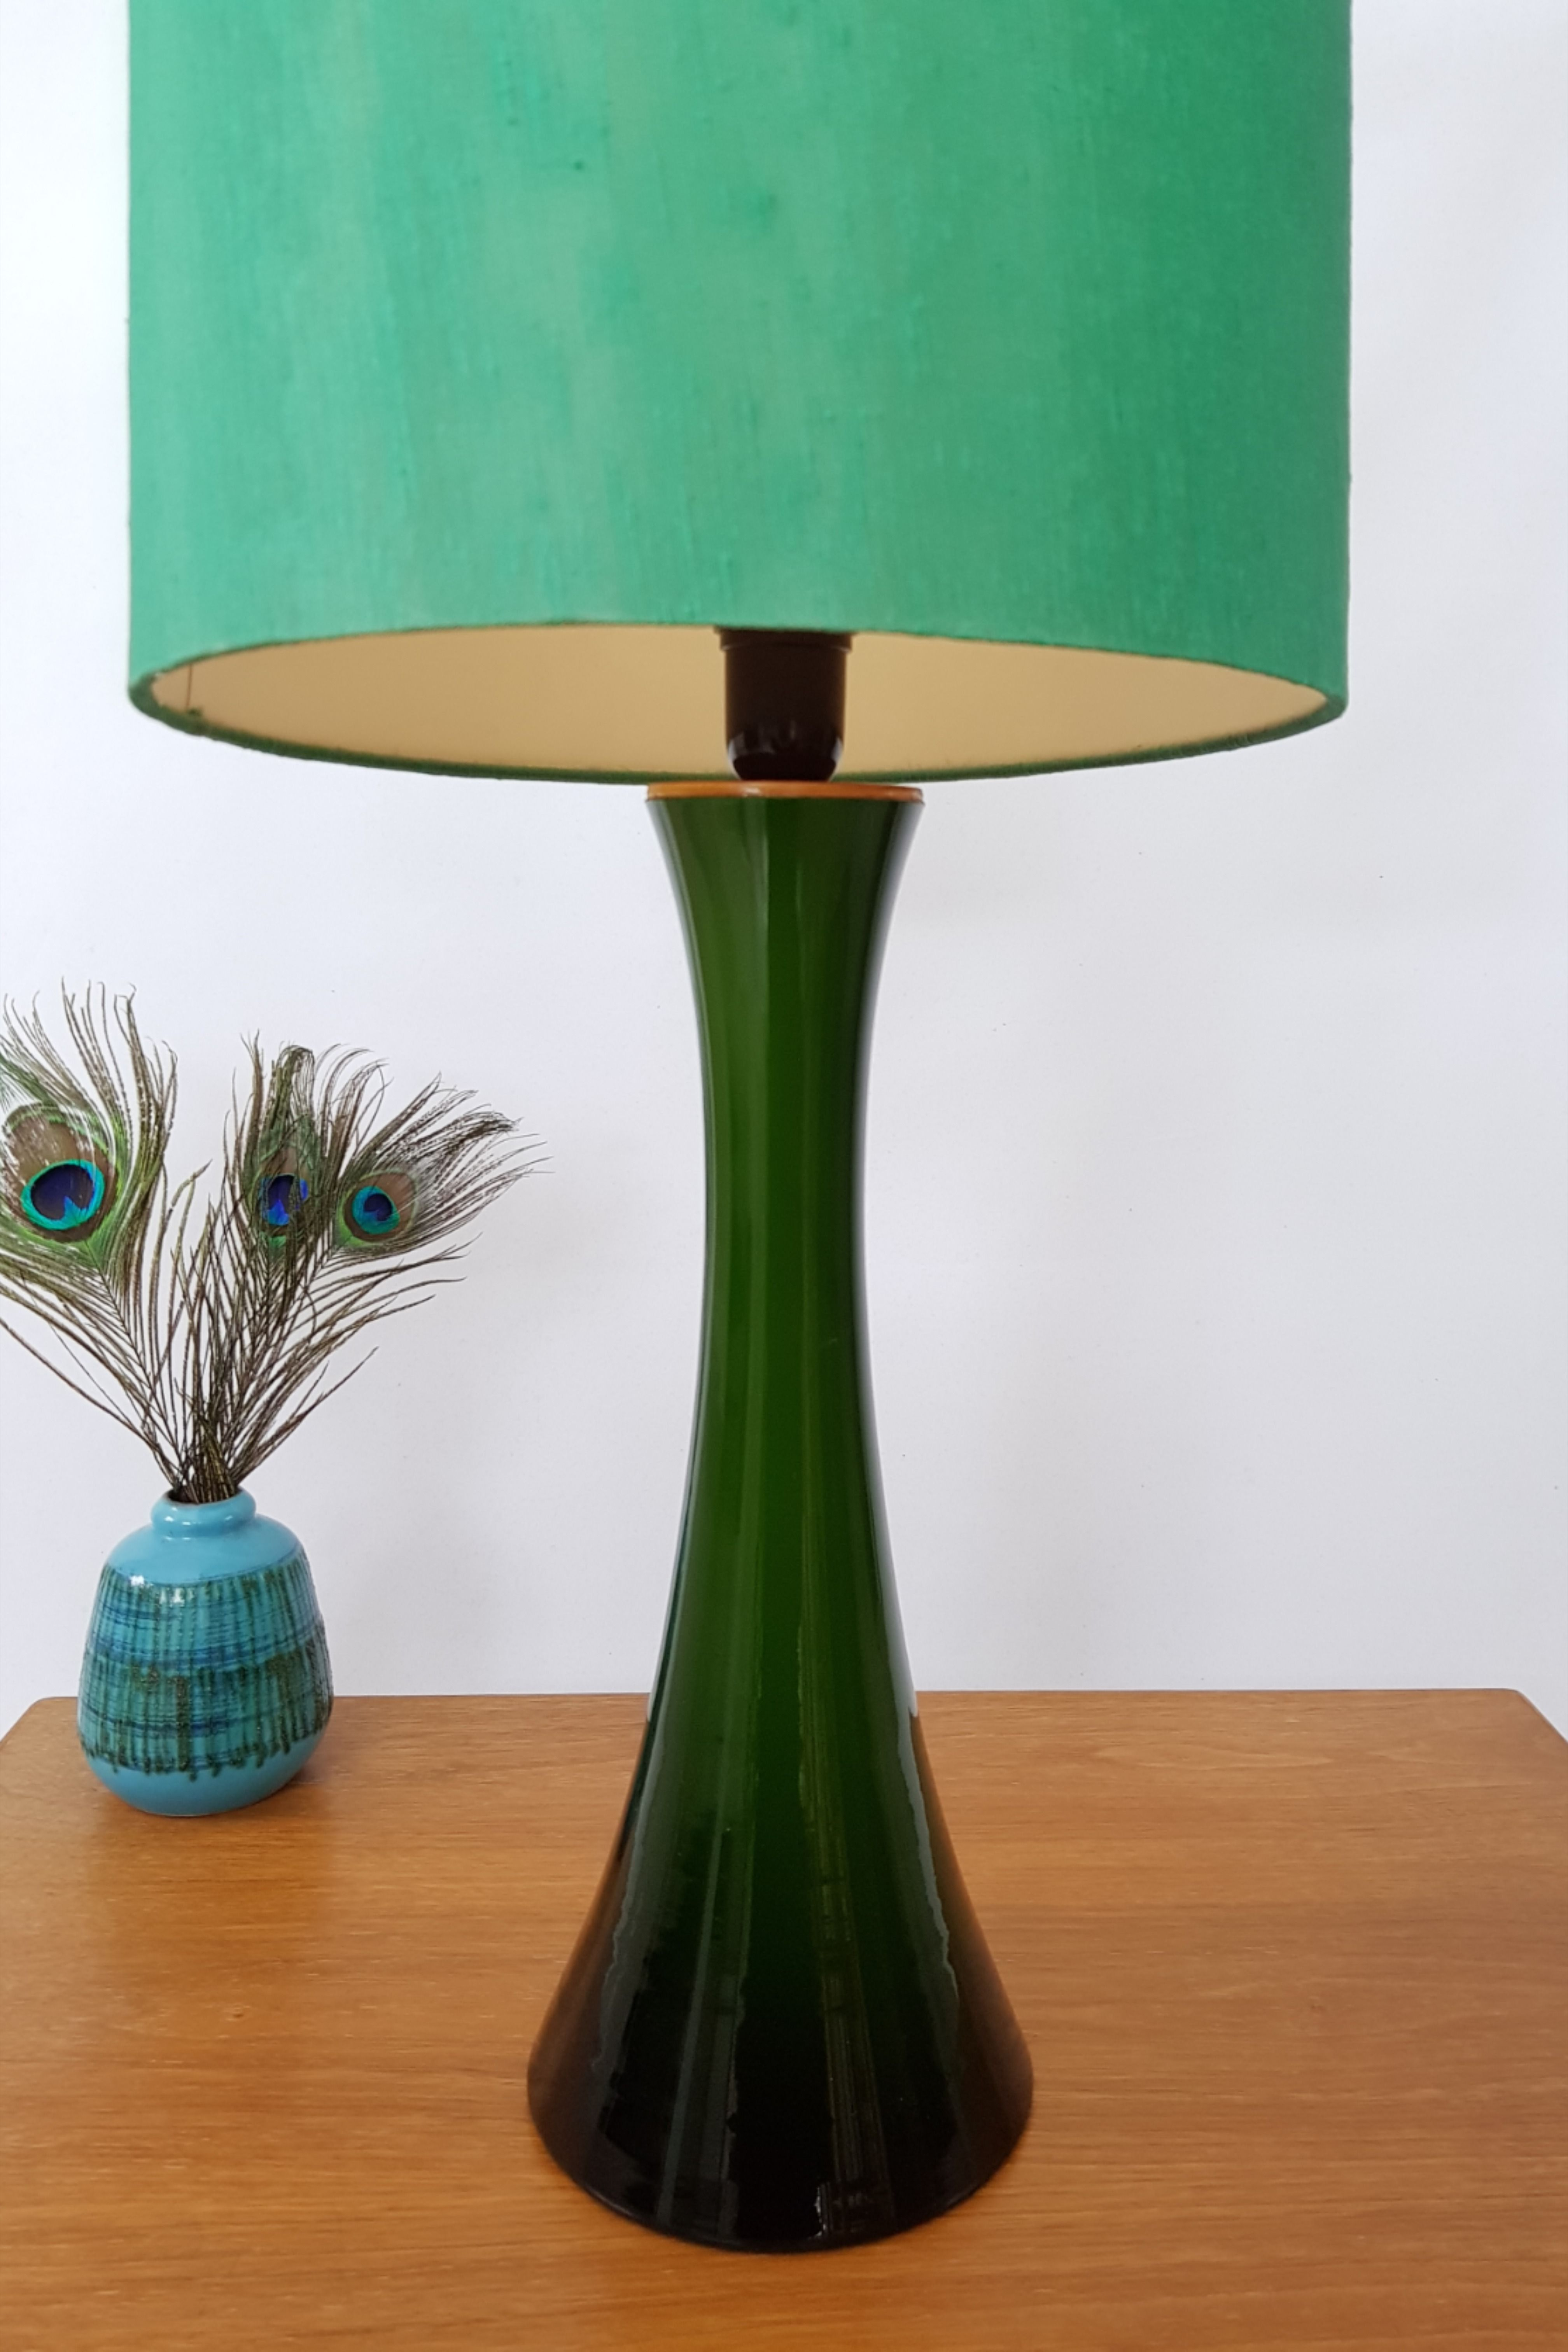 Beautiful Glass Table Lamp Designed By Berndt Nordstedt For Bergboms Sweden Holmegaard 1960s Mid Century Modern Scandinavian Design In 2020 Lamp Table Lamp Design Tall Table Lamps